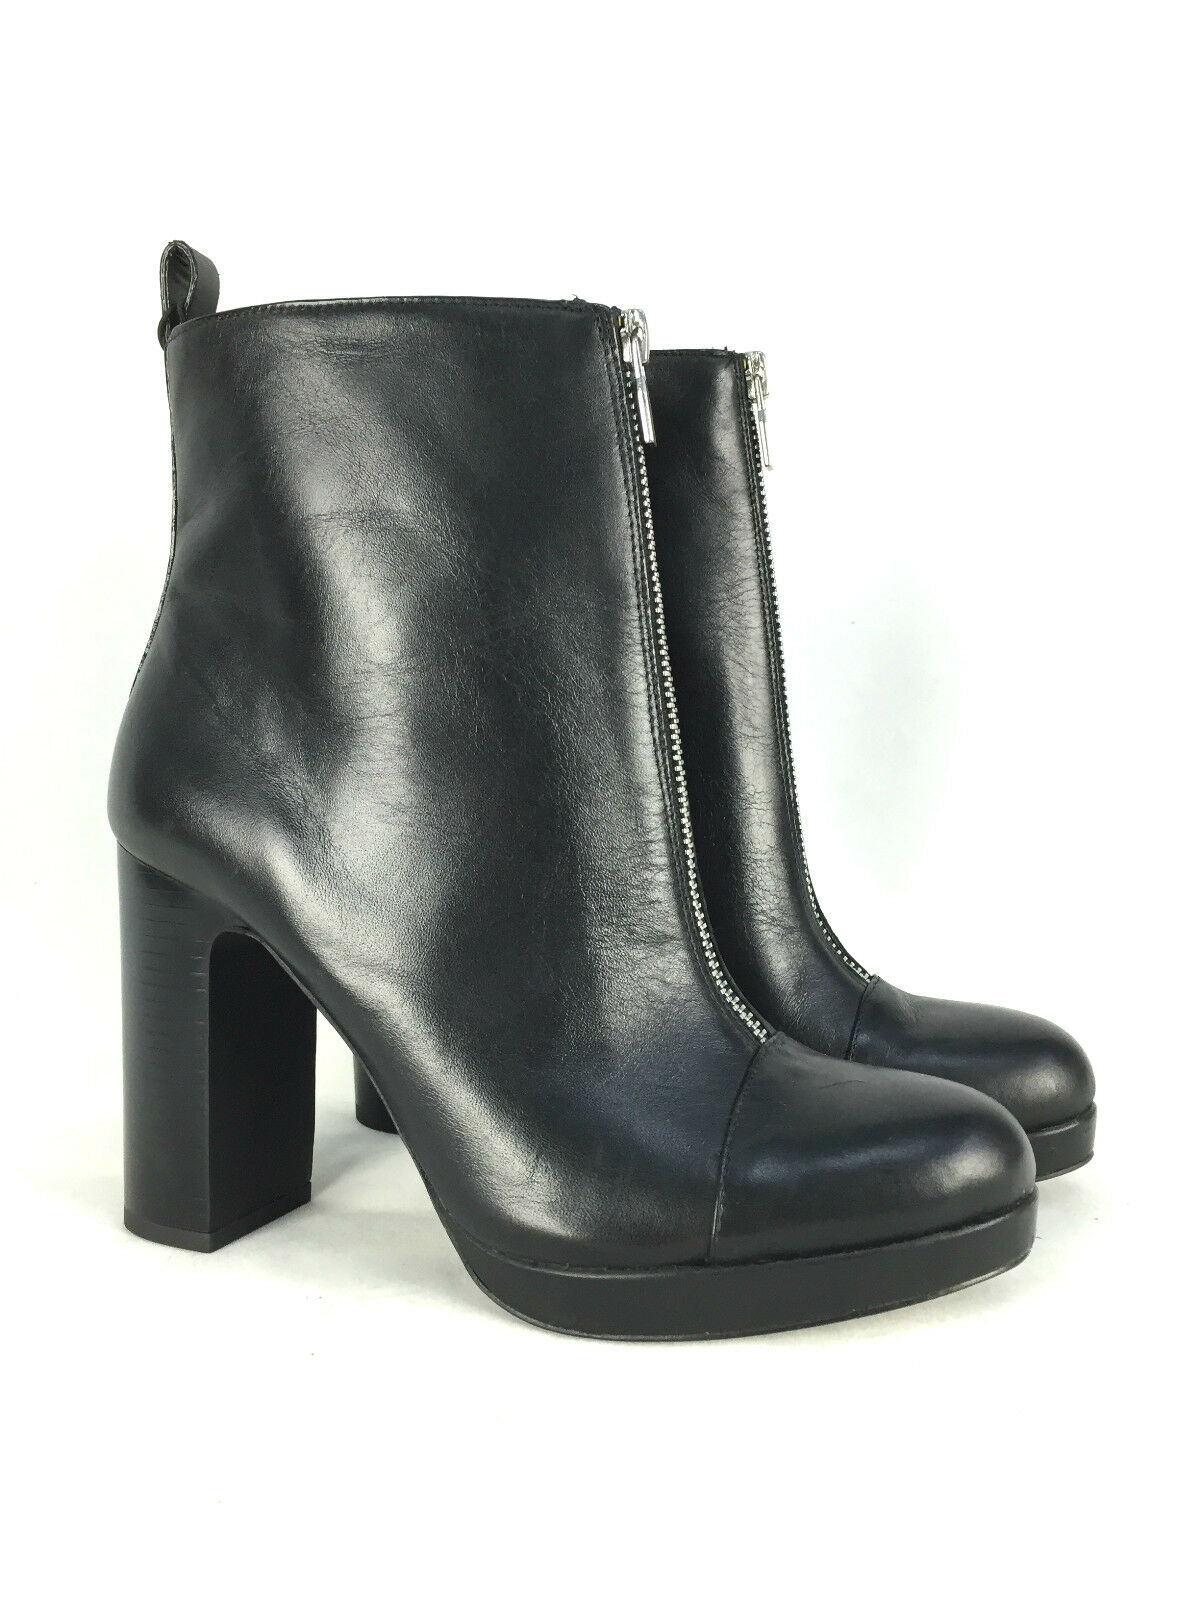 ZARA Negro LEATHER ZIP ANKLE botas 39 Talla EUR 37 38 39 botas 40 ad3468